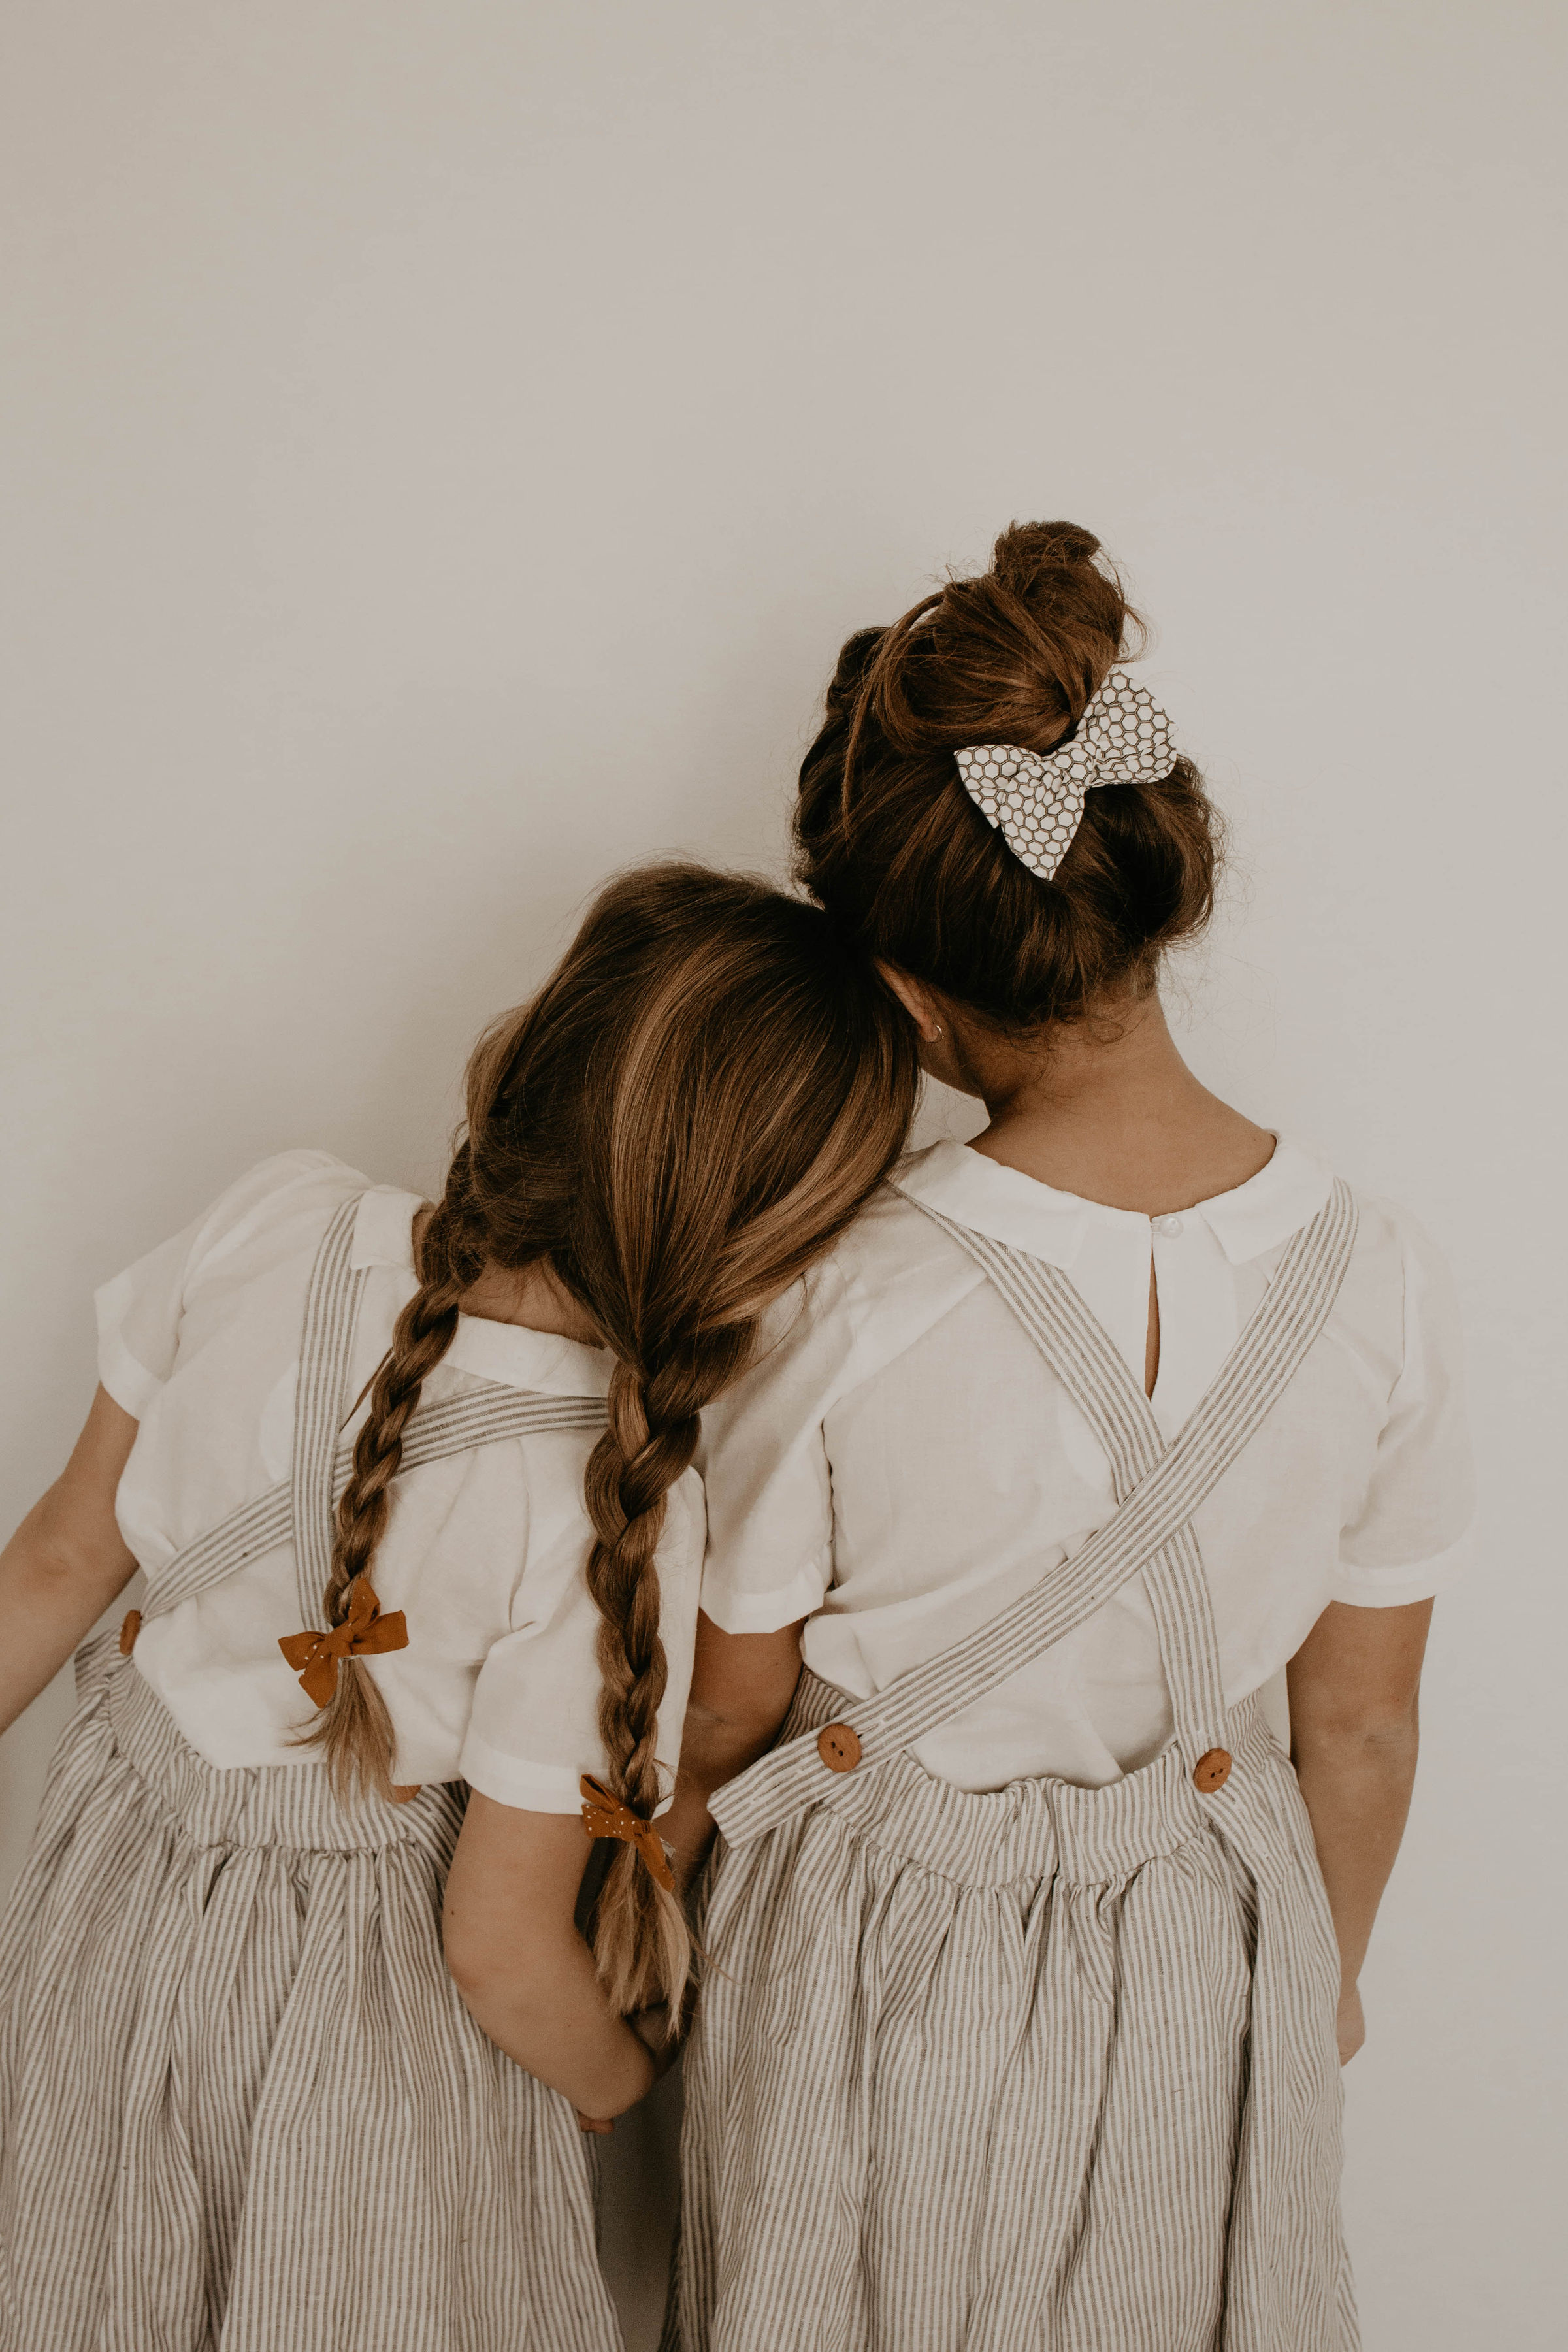 Bows - Our bow have been carefully crafted for your little girl. Guaranteed to not untie or come undone! Bows come on your choice of nylon headband, alligator clip, or barrettes. Our nylon headbands are slightly larger and stretchier than most popular brands. This allows the baby to comfortably wear our headbands without leaving any red marks or dents in the baby's head.